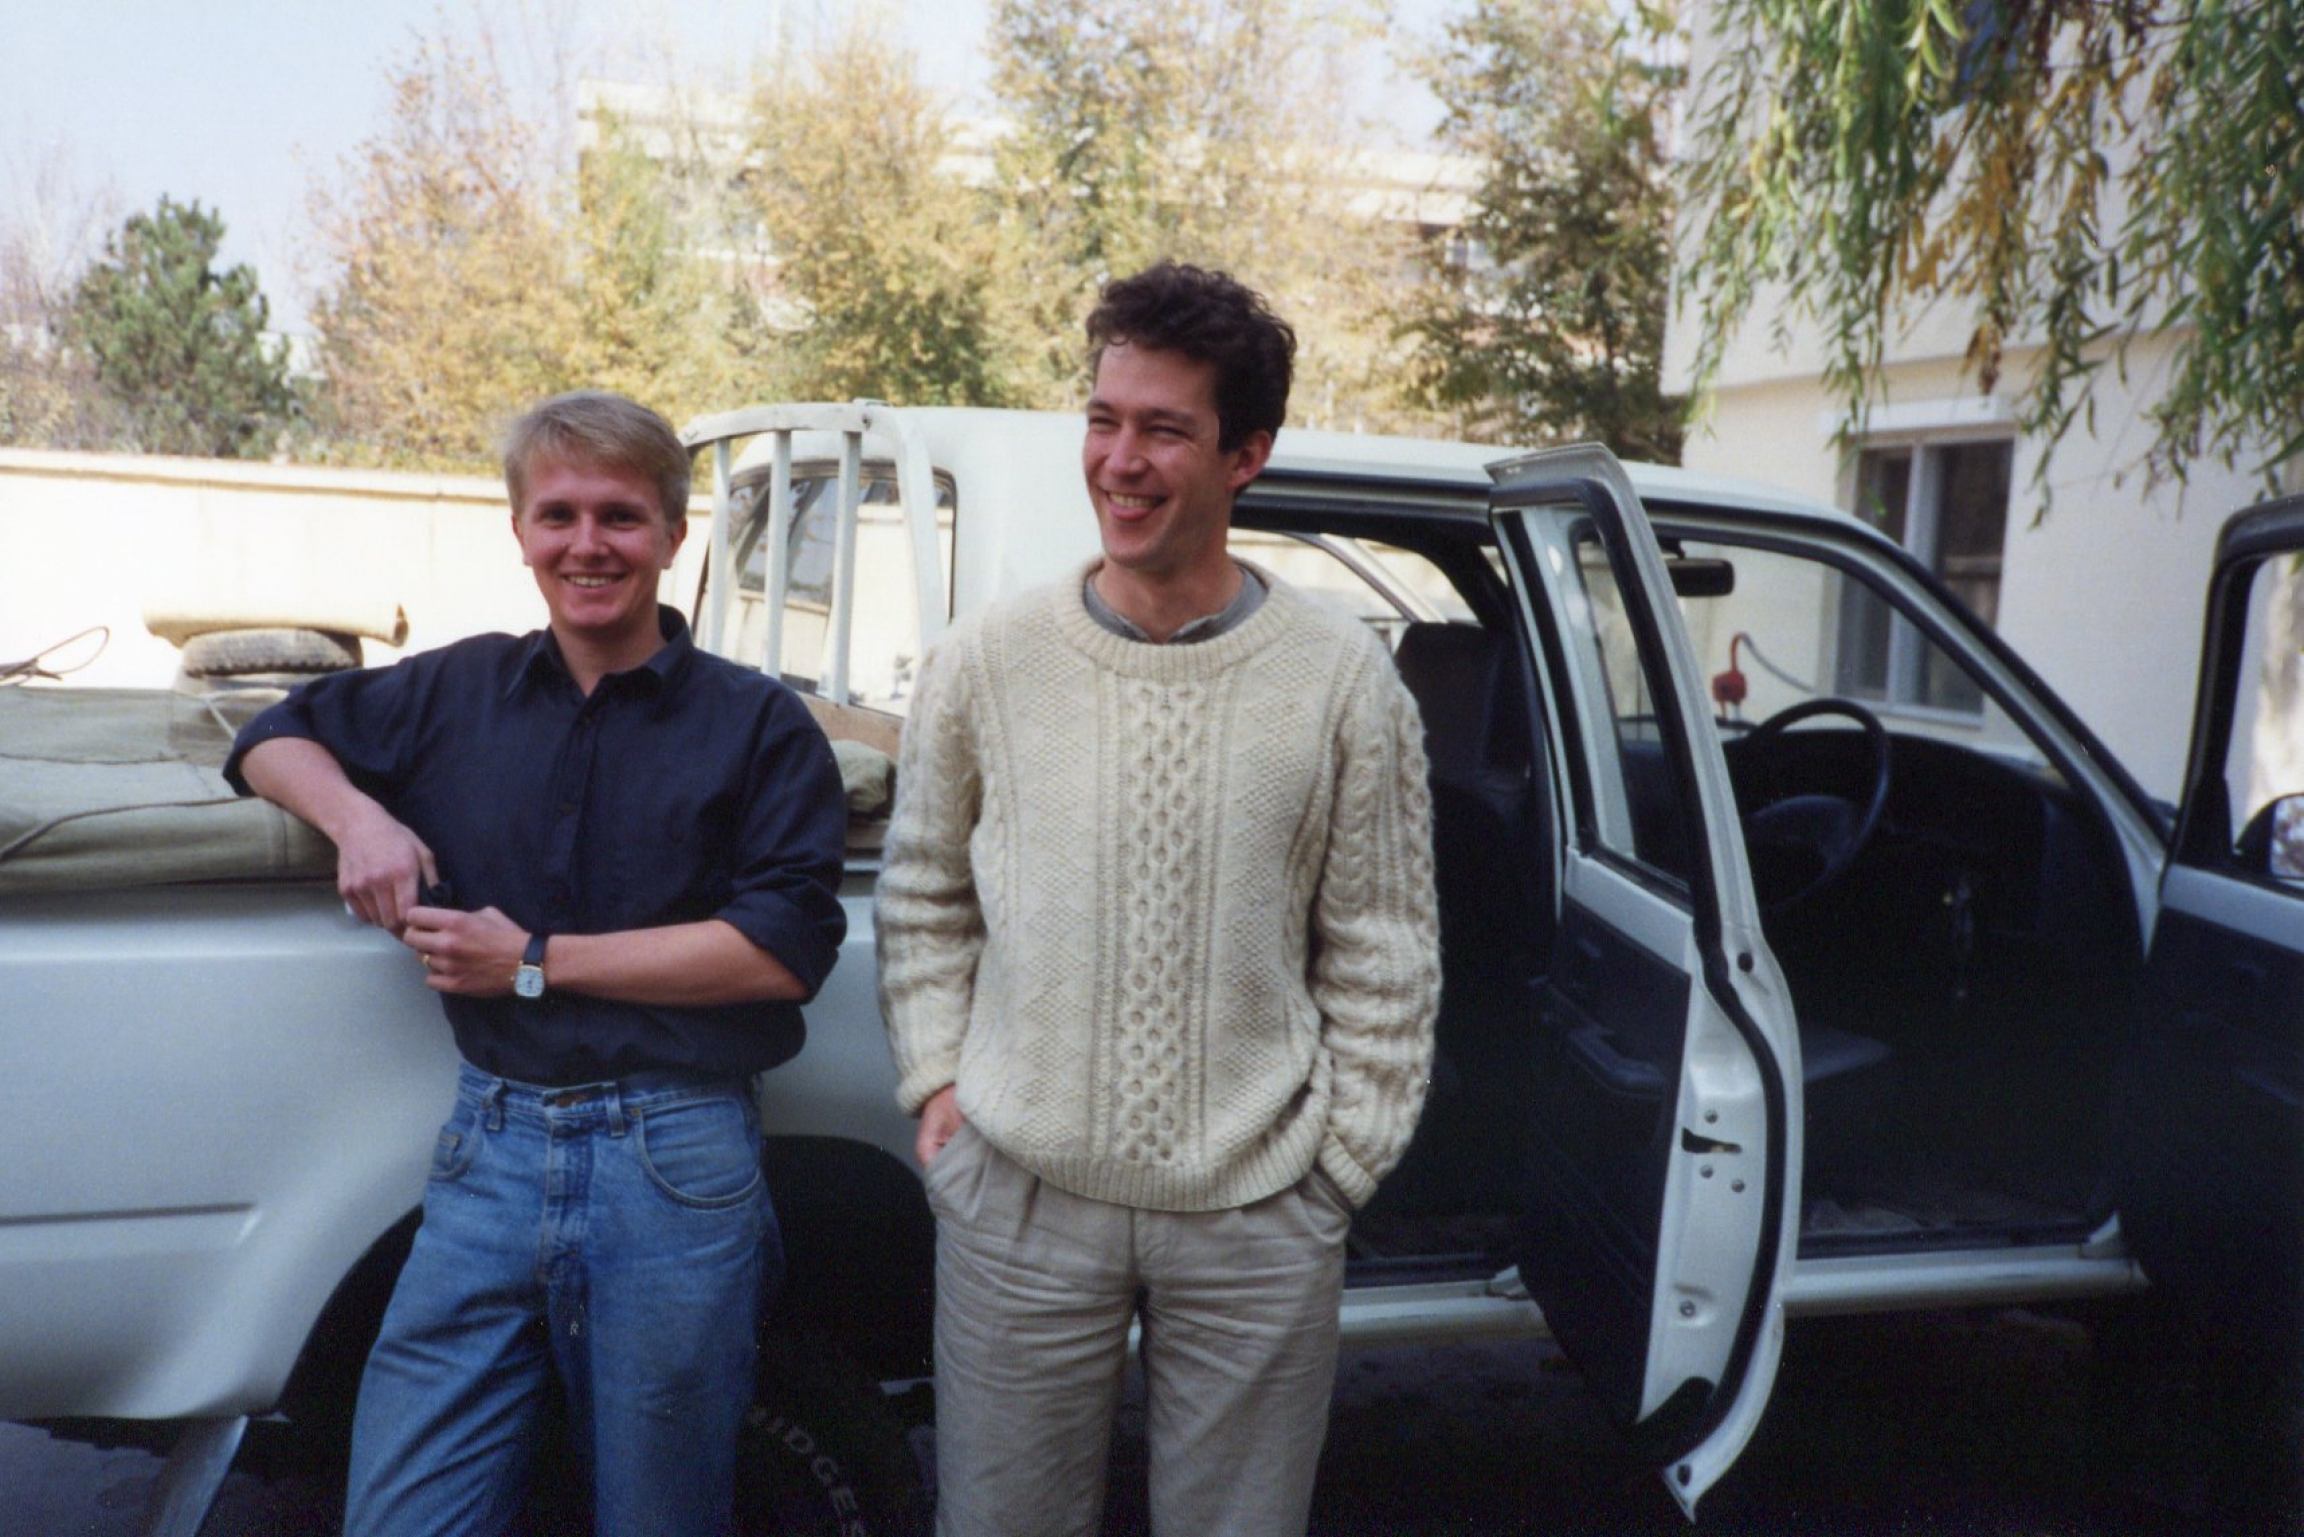 The author, Chris Woolf(left), and BBC colleague, Chris Bowers, at the beginning of the convoy, Nov. 7, 1991.